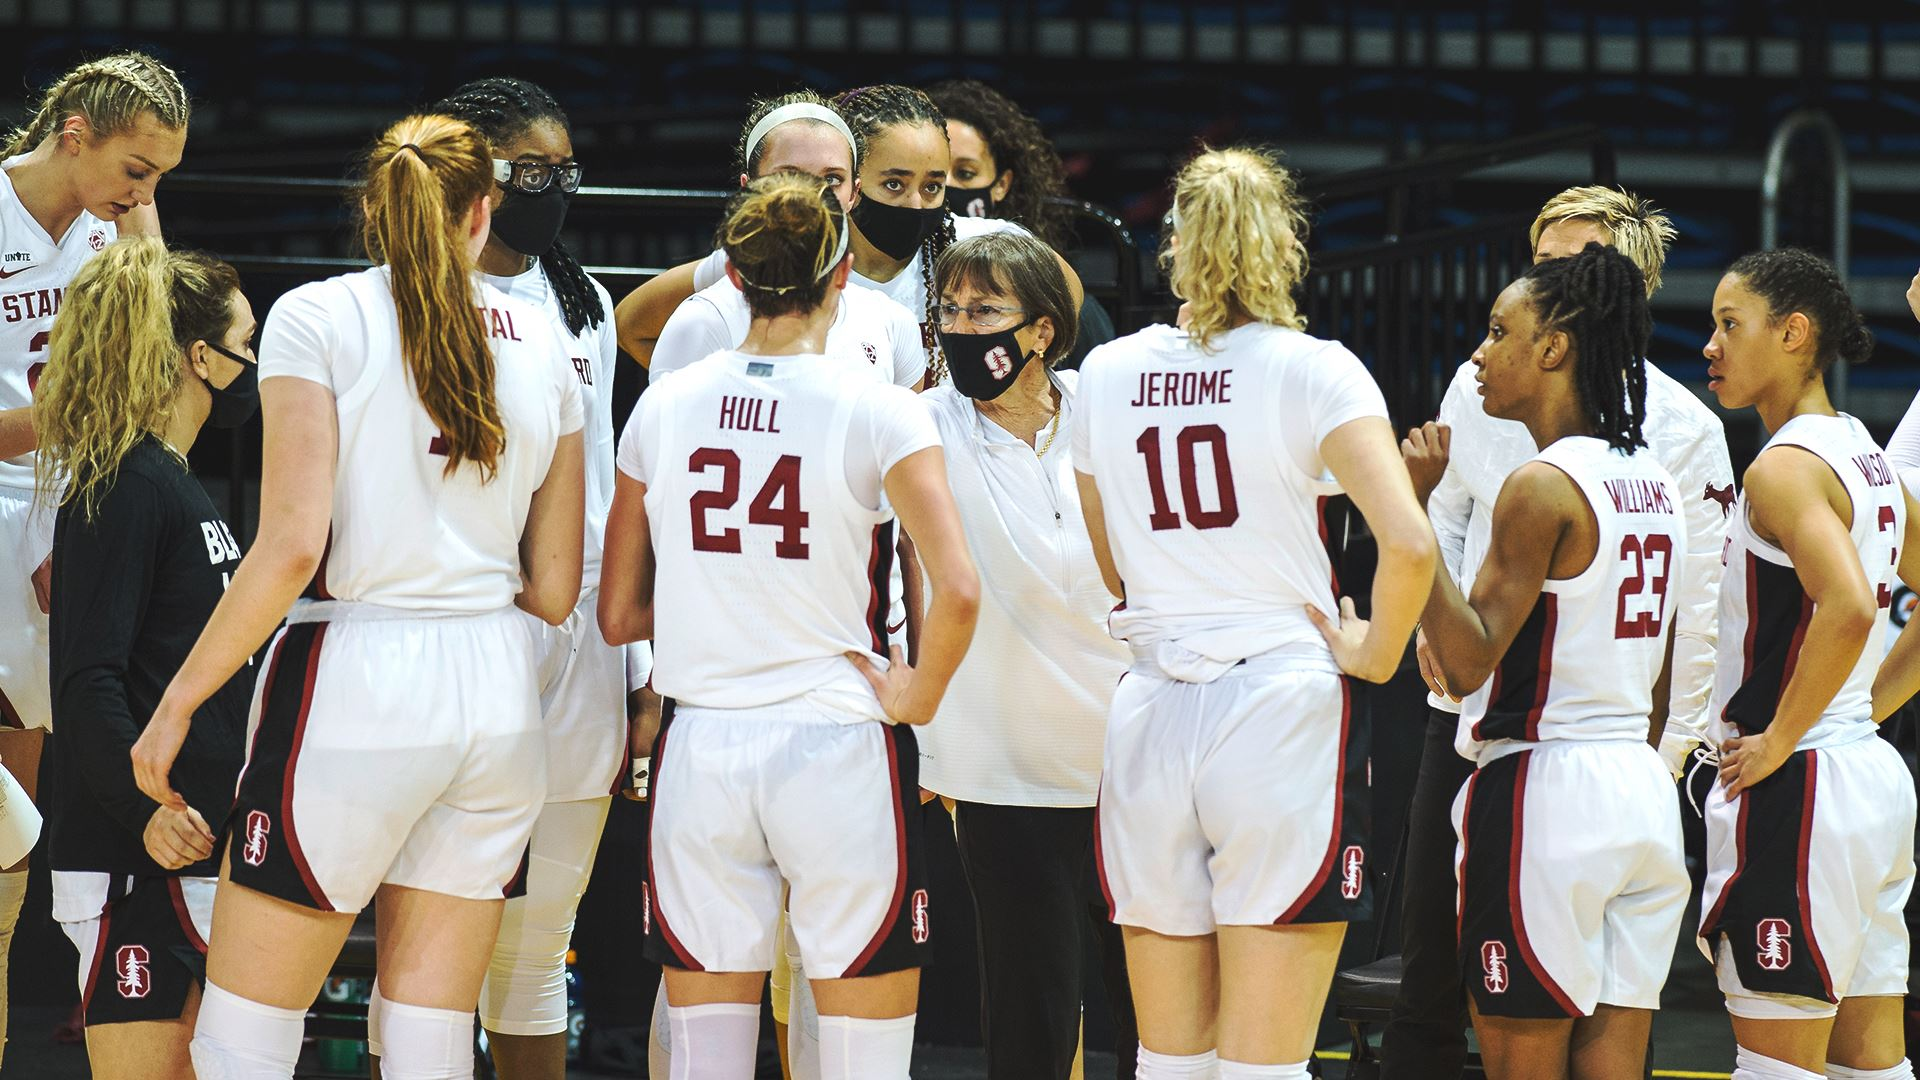 With improved rebounding, Stanford recovers from skid to cruise past USC 86-59